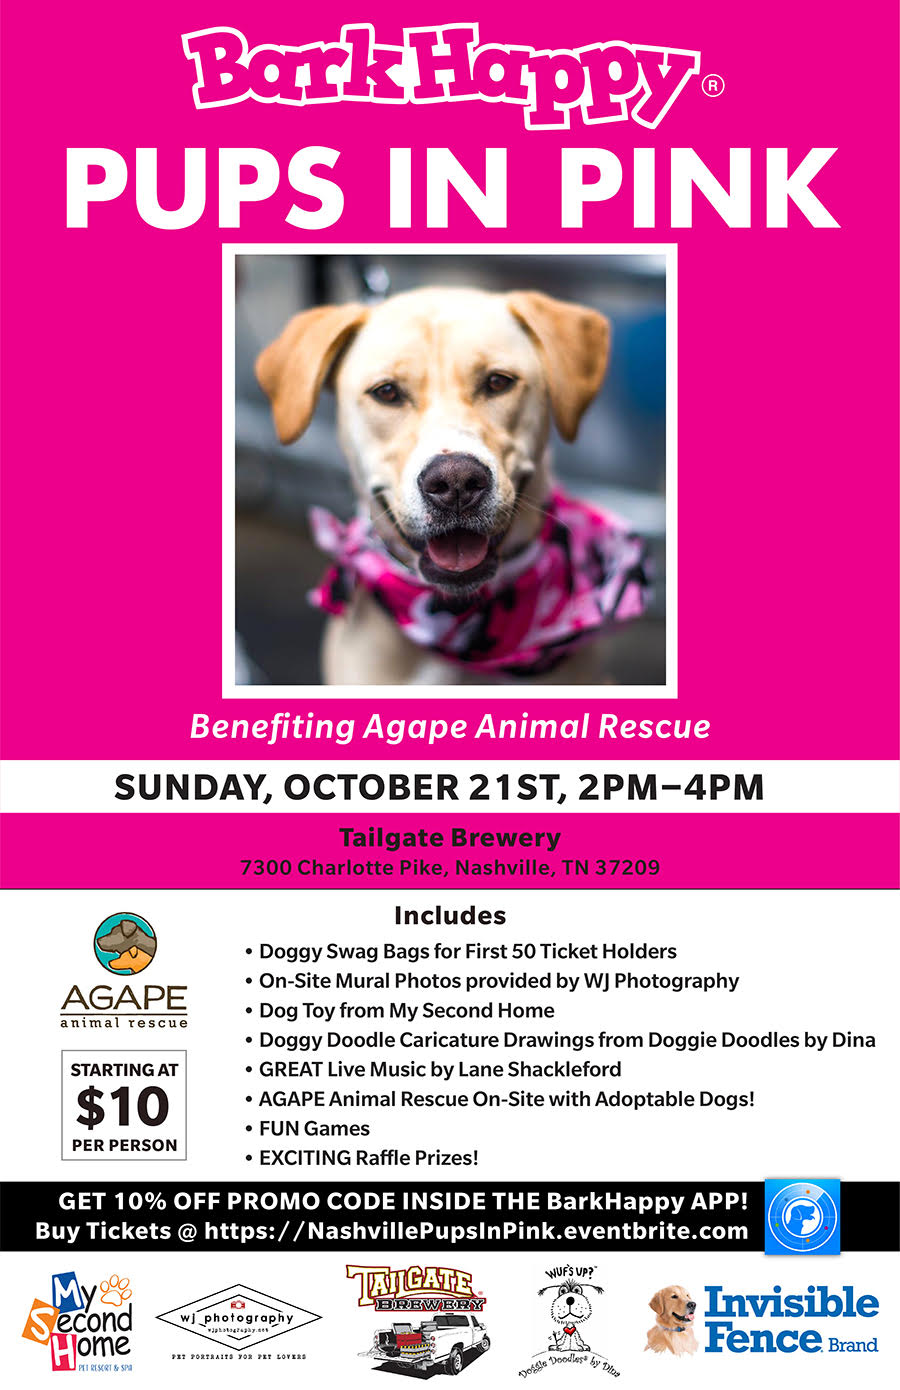 Barkhappy Nashville Pups In Pink Benefiting Agape Animal Rescue